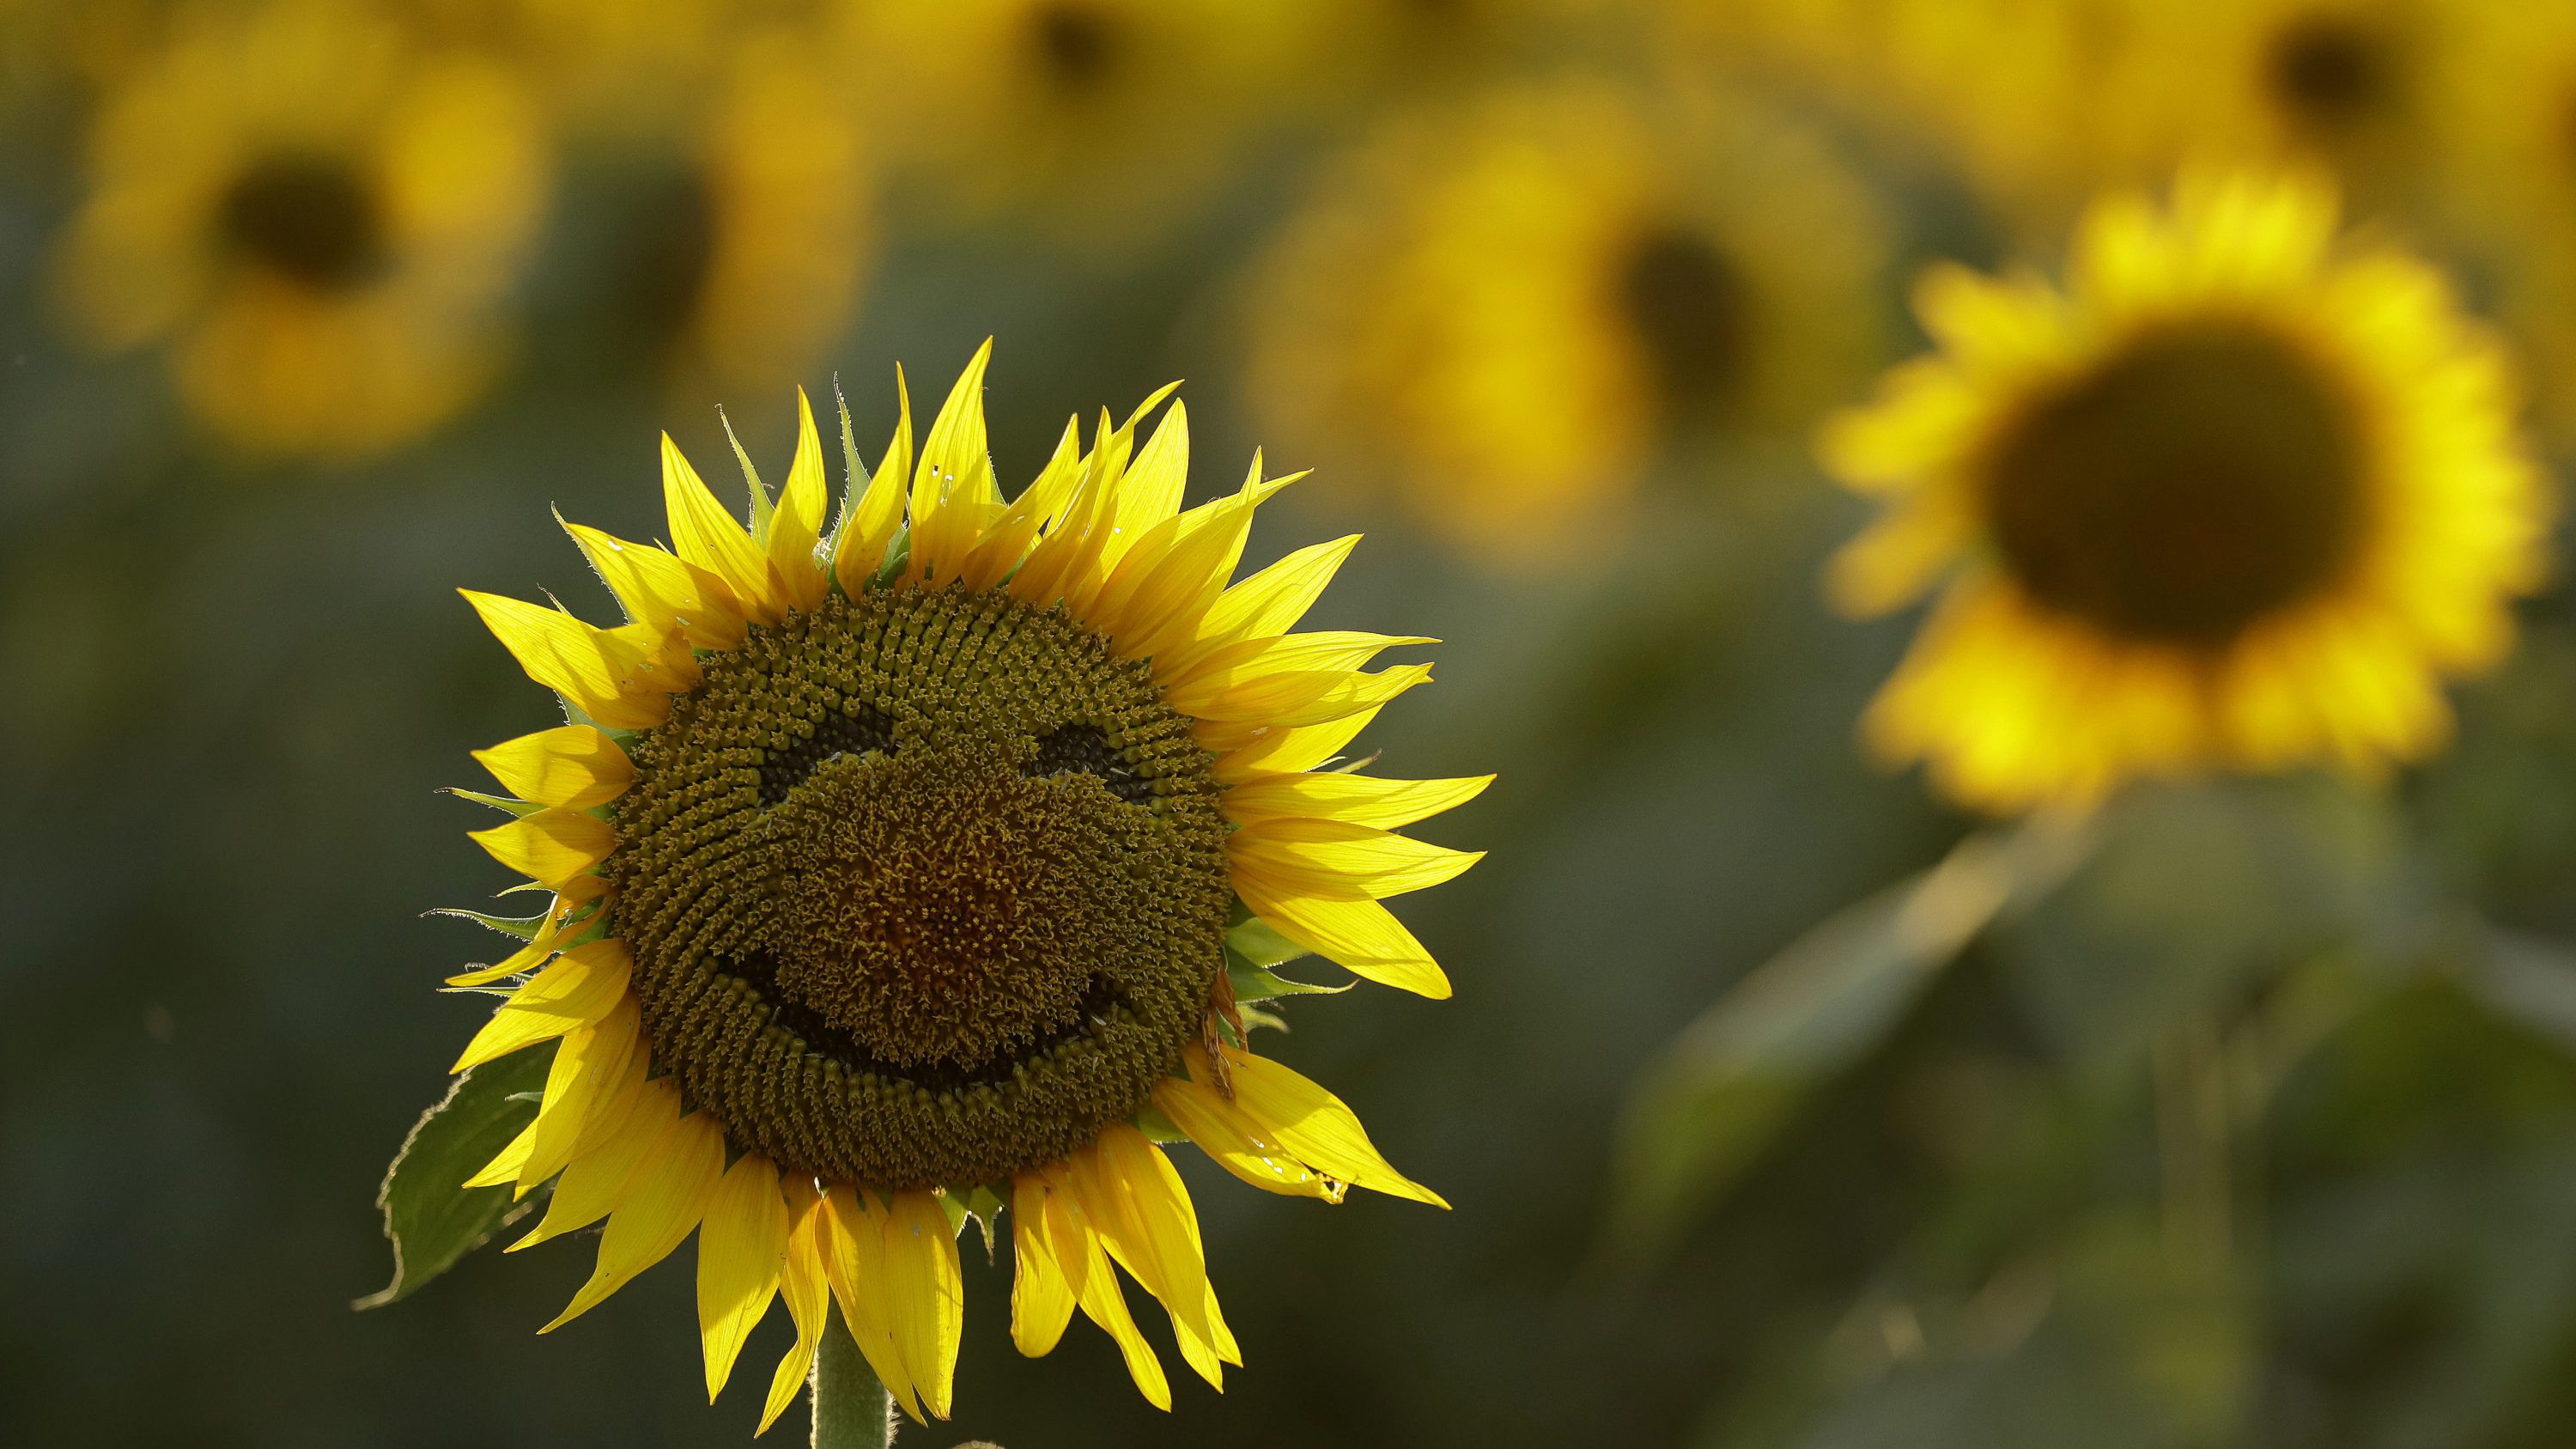 A smiley face is seen on a sunflower in a sunflower field Wednesday, Sept. 7, 2016, in Lawrence, Kan. The 40-acre field, planted annually by the Grinter family, draws thousands during the weeklong late summer blossoming of the flowers.